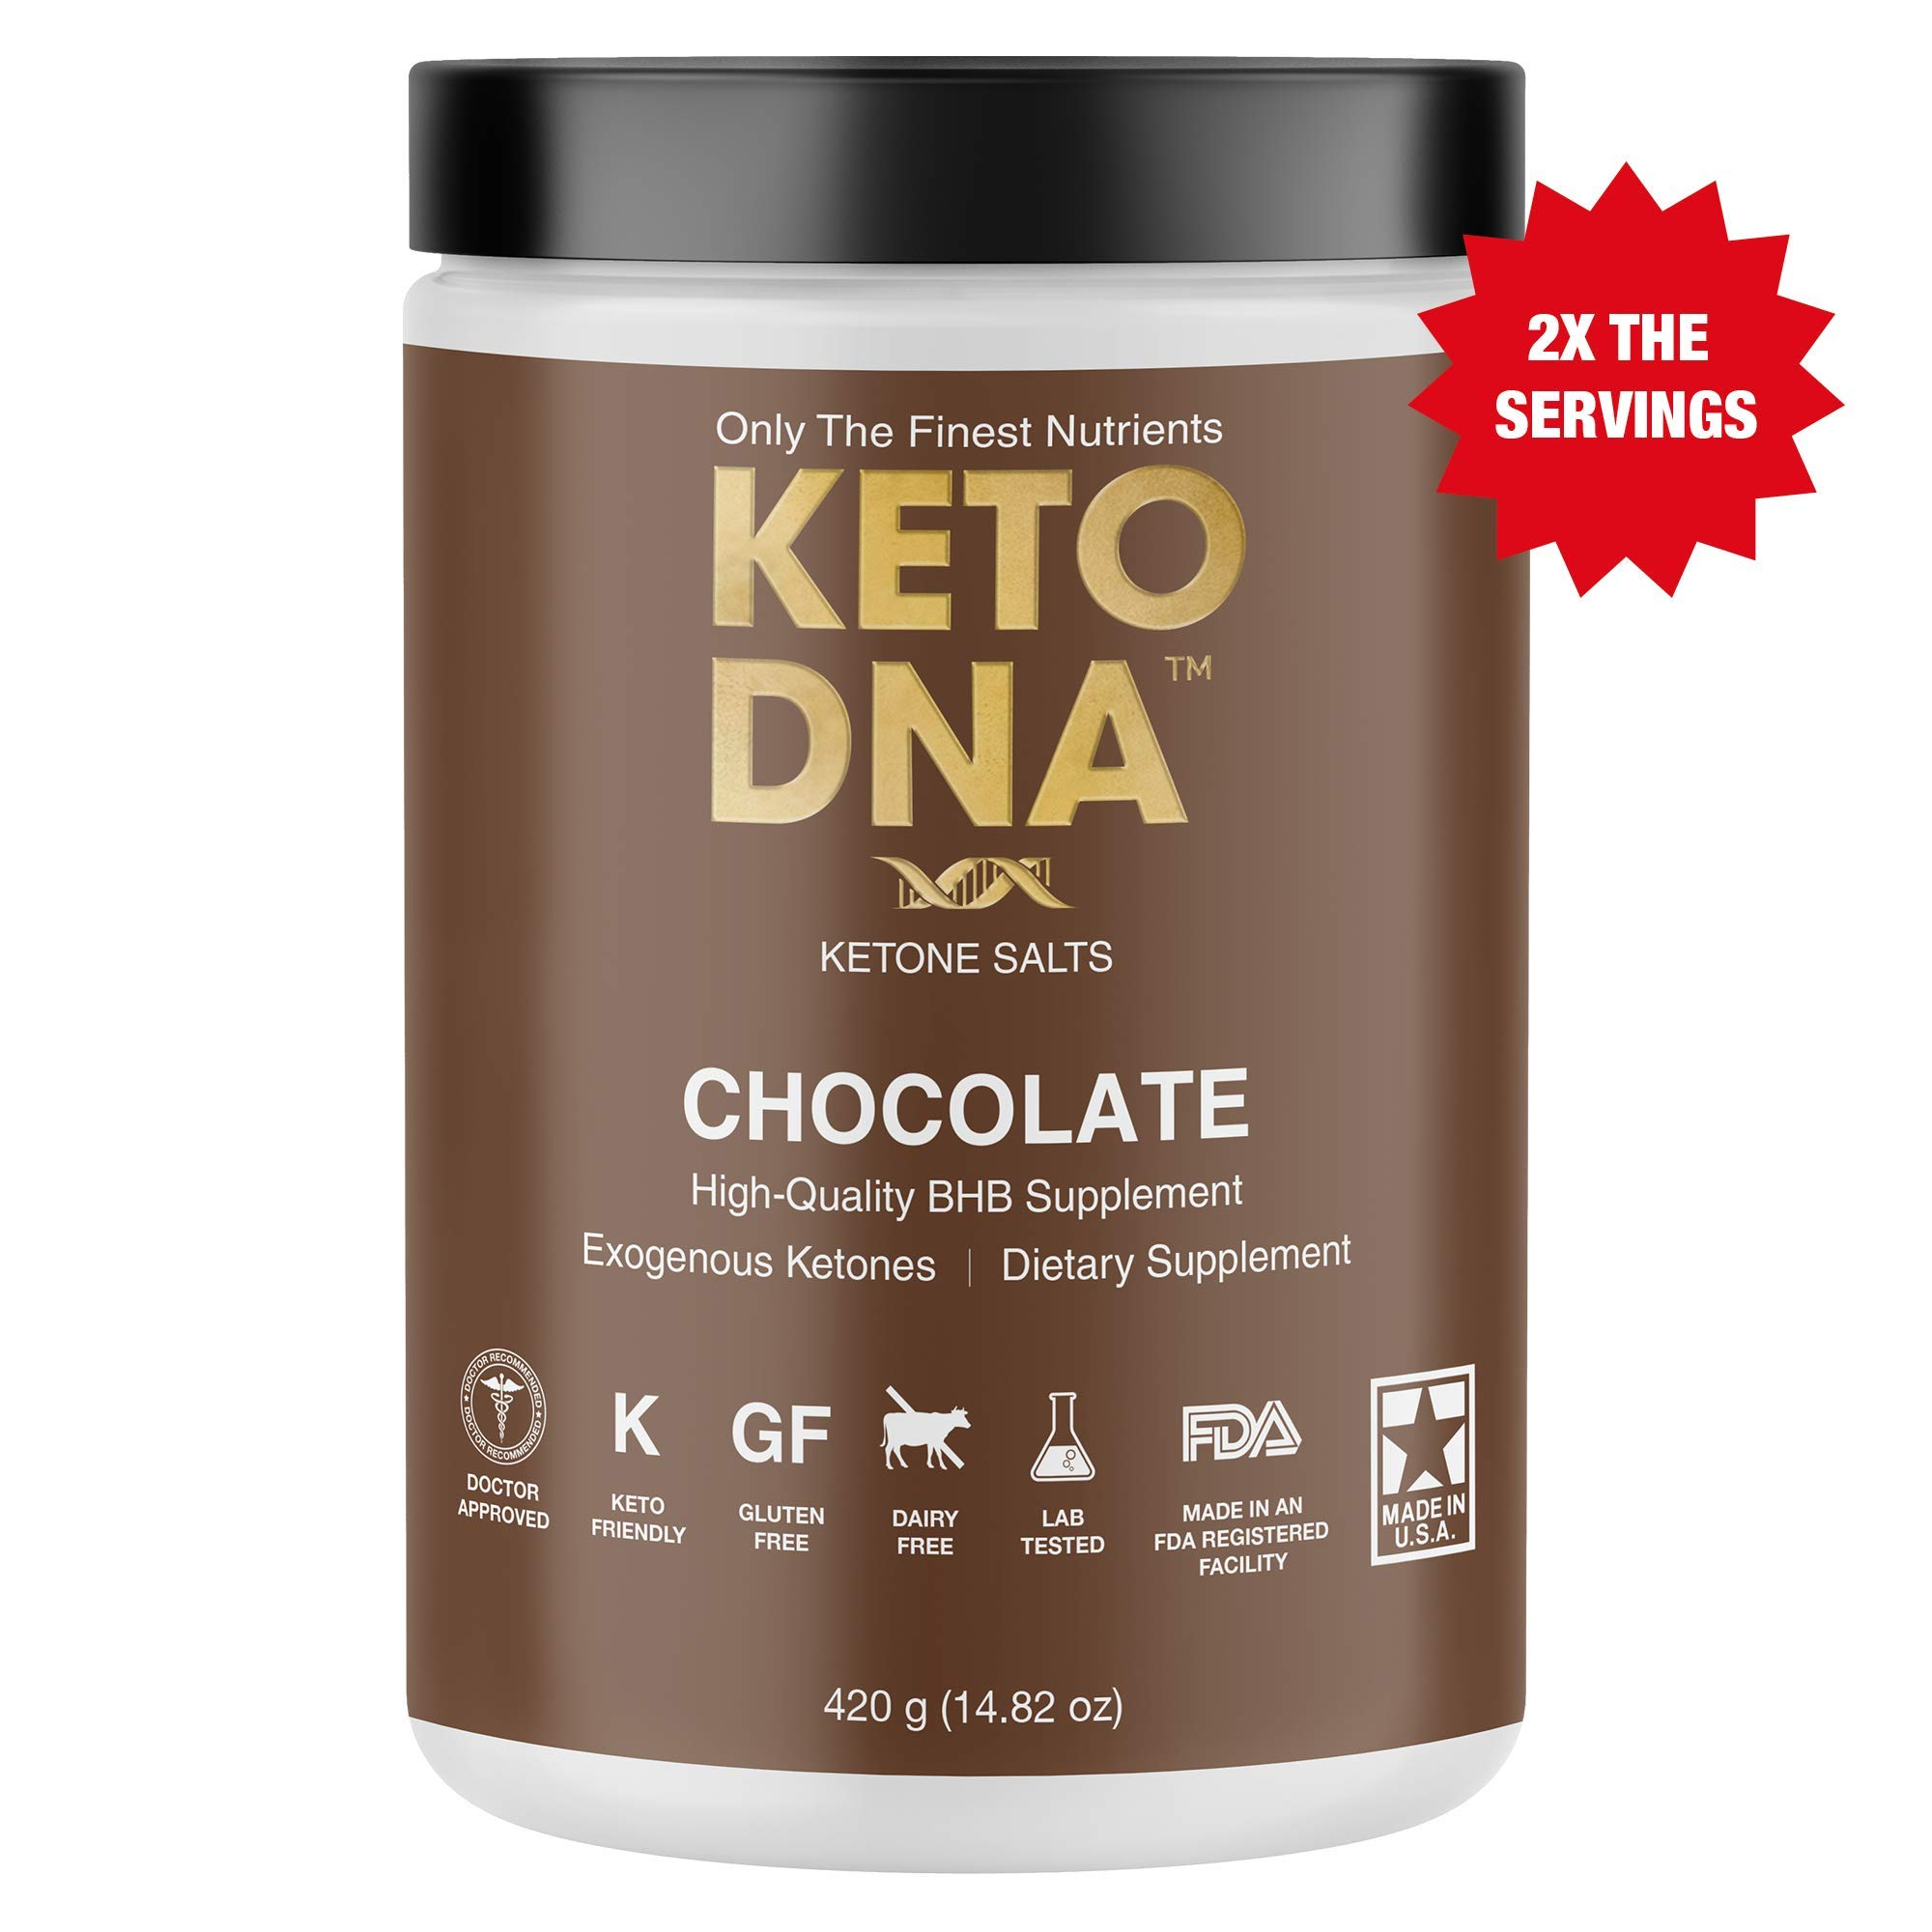 Keto DNA Chocolate Exogenous Ketone Supplement | 30 Servings - 420g | BHB Salts for Ketosis | Beta Hydroxybutyrate Ketones Powder | Perfect to Burn Fat and Increase Energy & Focus | Large